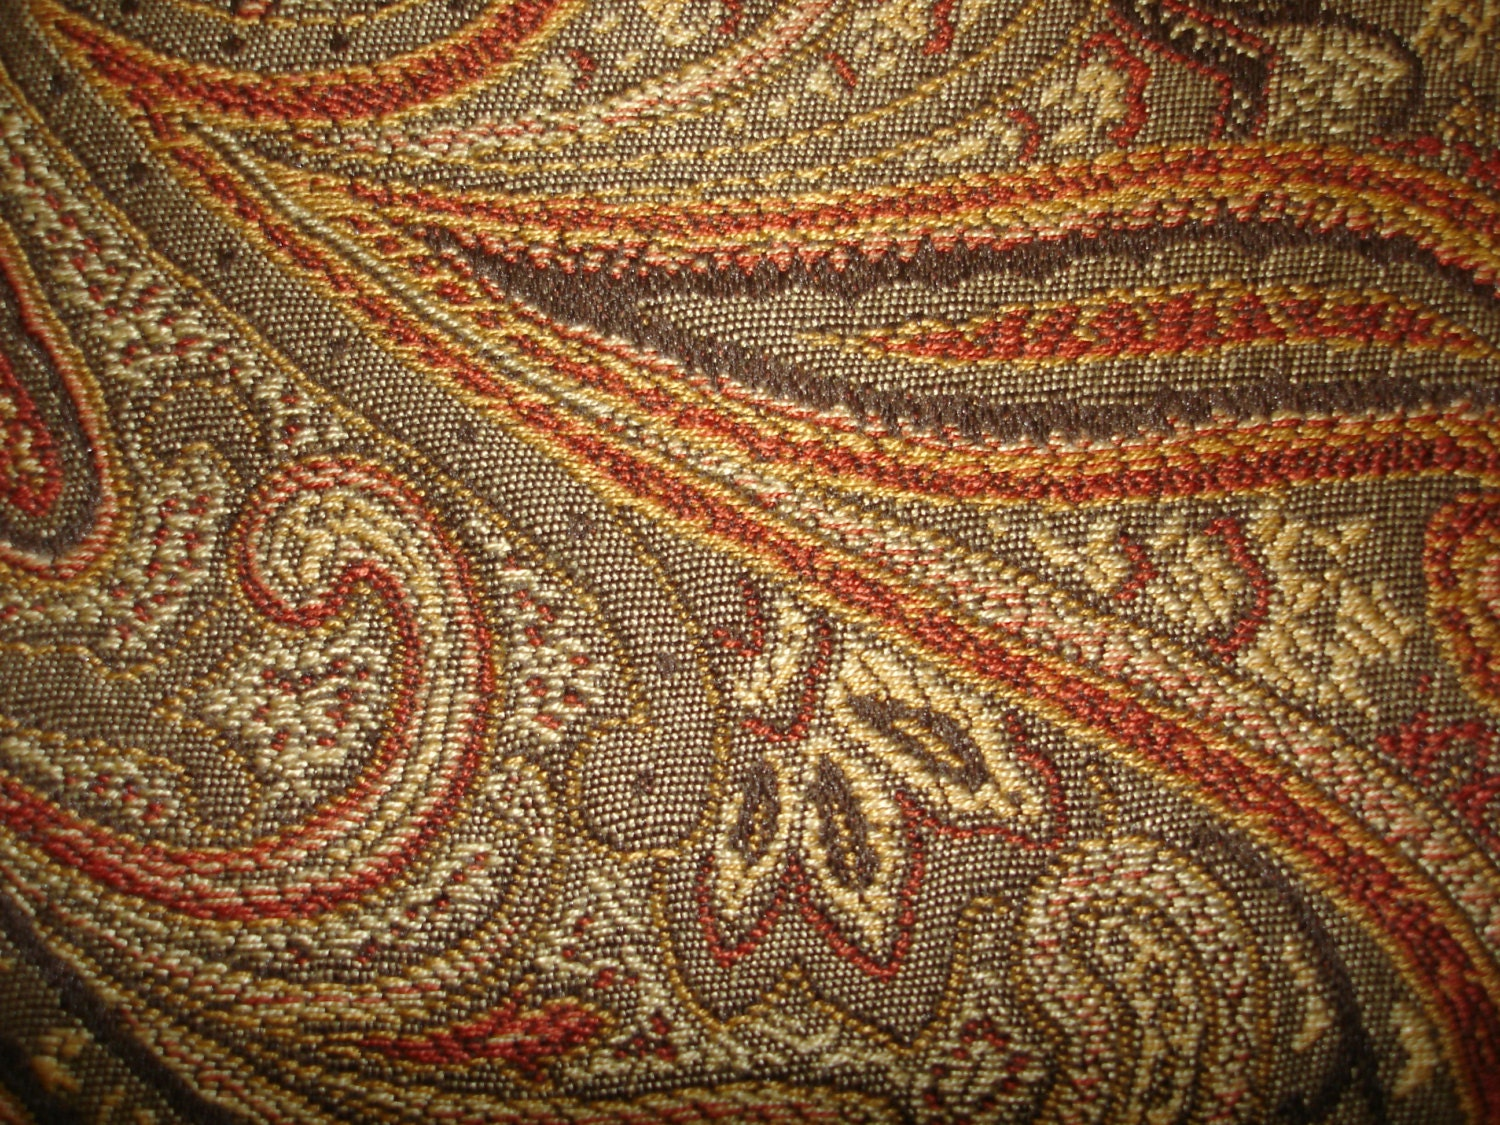 Italian Woven Paisley Upholstery Fabric Spice High End